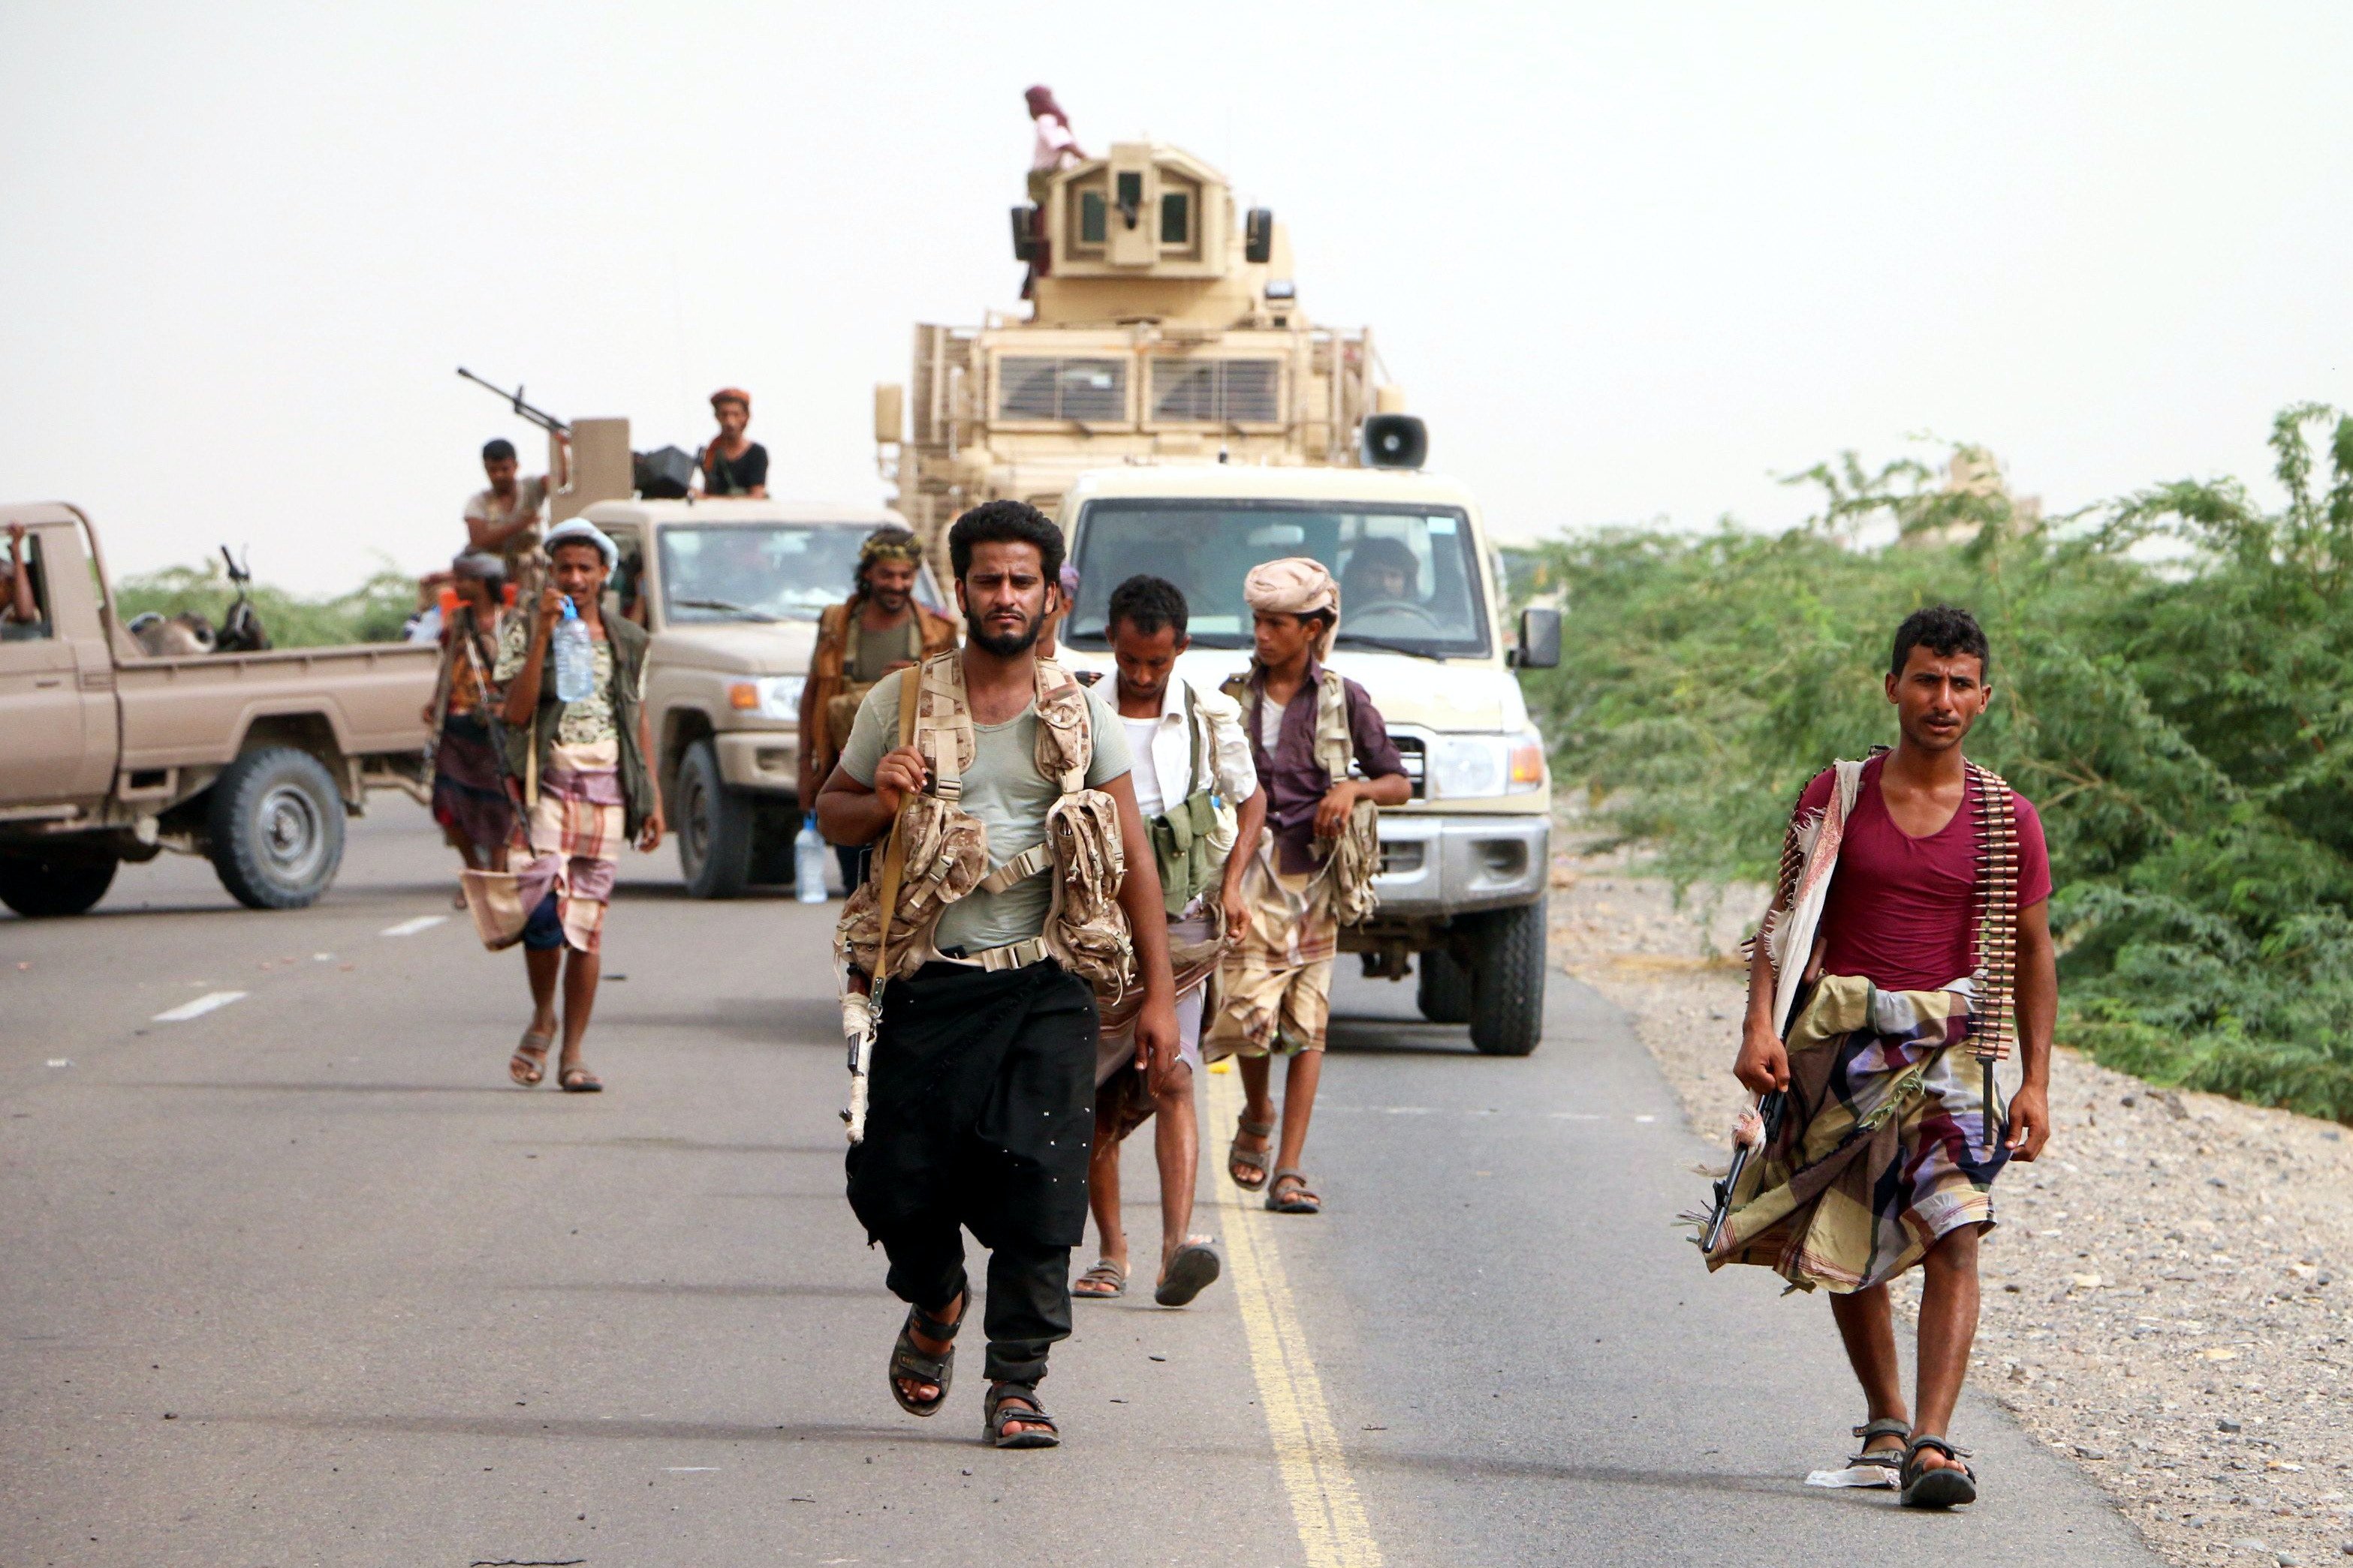 Mandatory Credit: Photo by NAJEEB ALMAHBOOBI/EPA-EFE/REX/Shutterstock (9715391f)<br /><br /><br /><br /><br /><br /><br /><br /> Yemeni forces backed by the Saudi-led coalition take position during an attack on the port city of Hodeidah, on the outskirts of Hodeidah, Yemen, 13 June 2018. According to reports, Yemeni government forces backed by the Saudi-led coalition launched a military offensive to regain control of the Red Sea port-city of Hodeidah acts as an entrance point for Houthi rebel supplies and humanitarian aid.<br /><br /><br /><br /><br /><br /><br /><br /> Yemeni forces and Saudi-led coalition launch military offensive on Hodeidah, Yemen - 13 Jun 2018